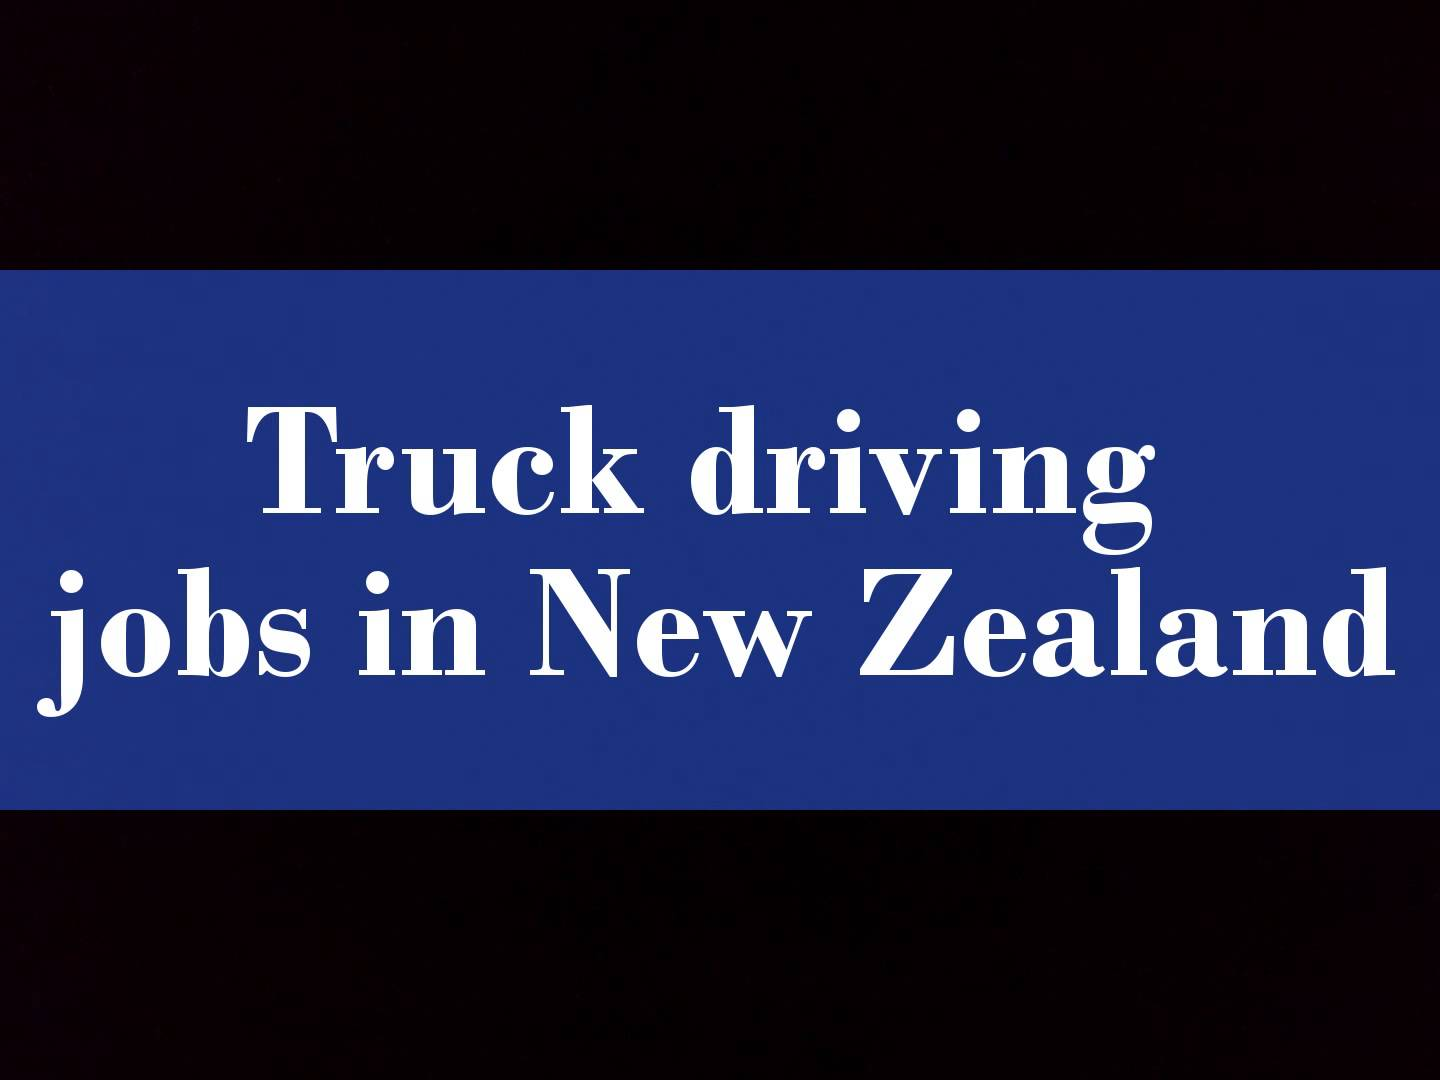 Truck driving jobs in New Zealand | MyJob News